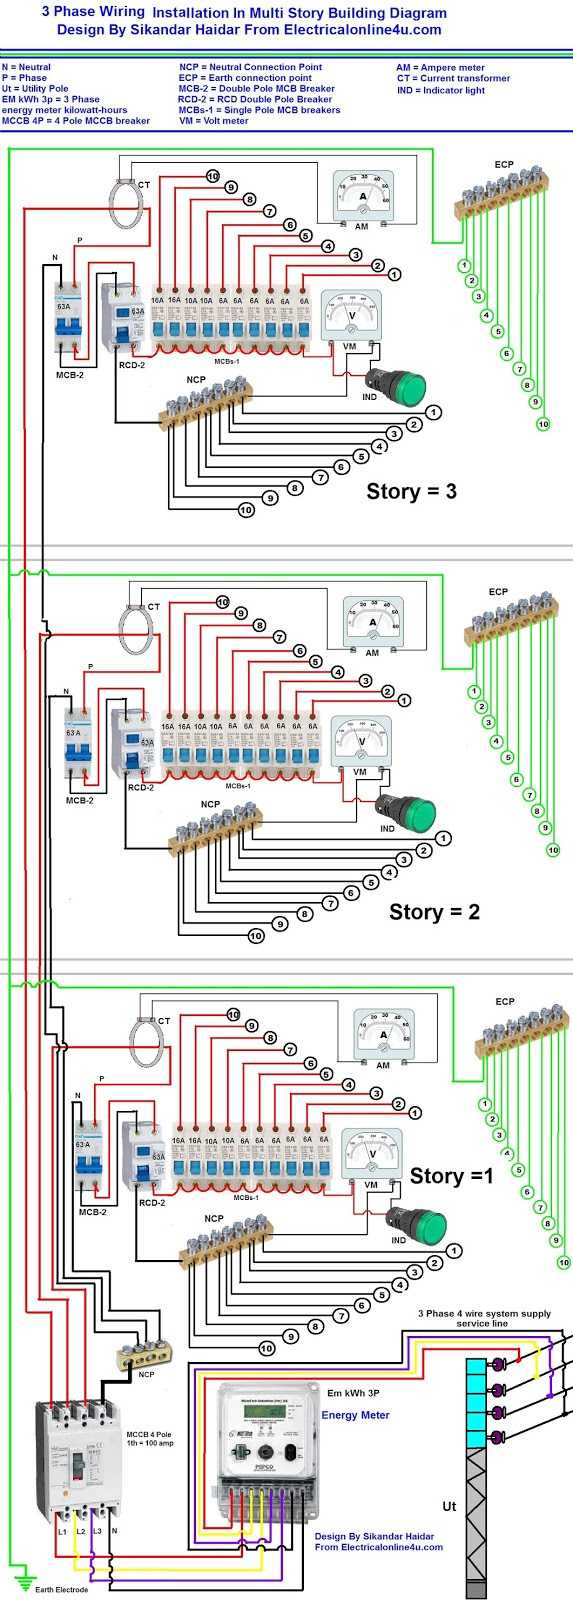 3 phase distribution board diagram for multi story house building three phase electrical wiring installation in house home urdu hindi ccuart